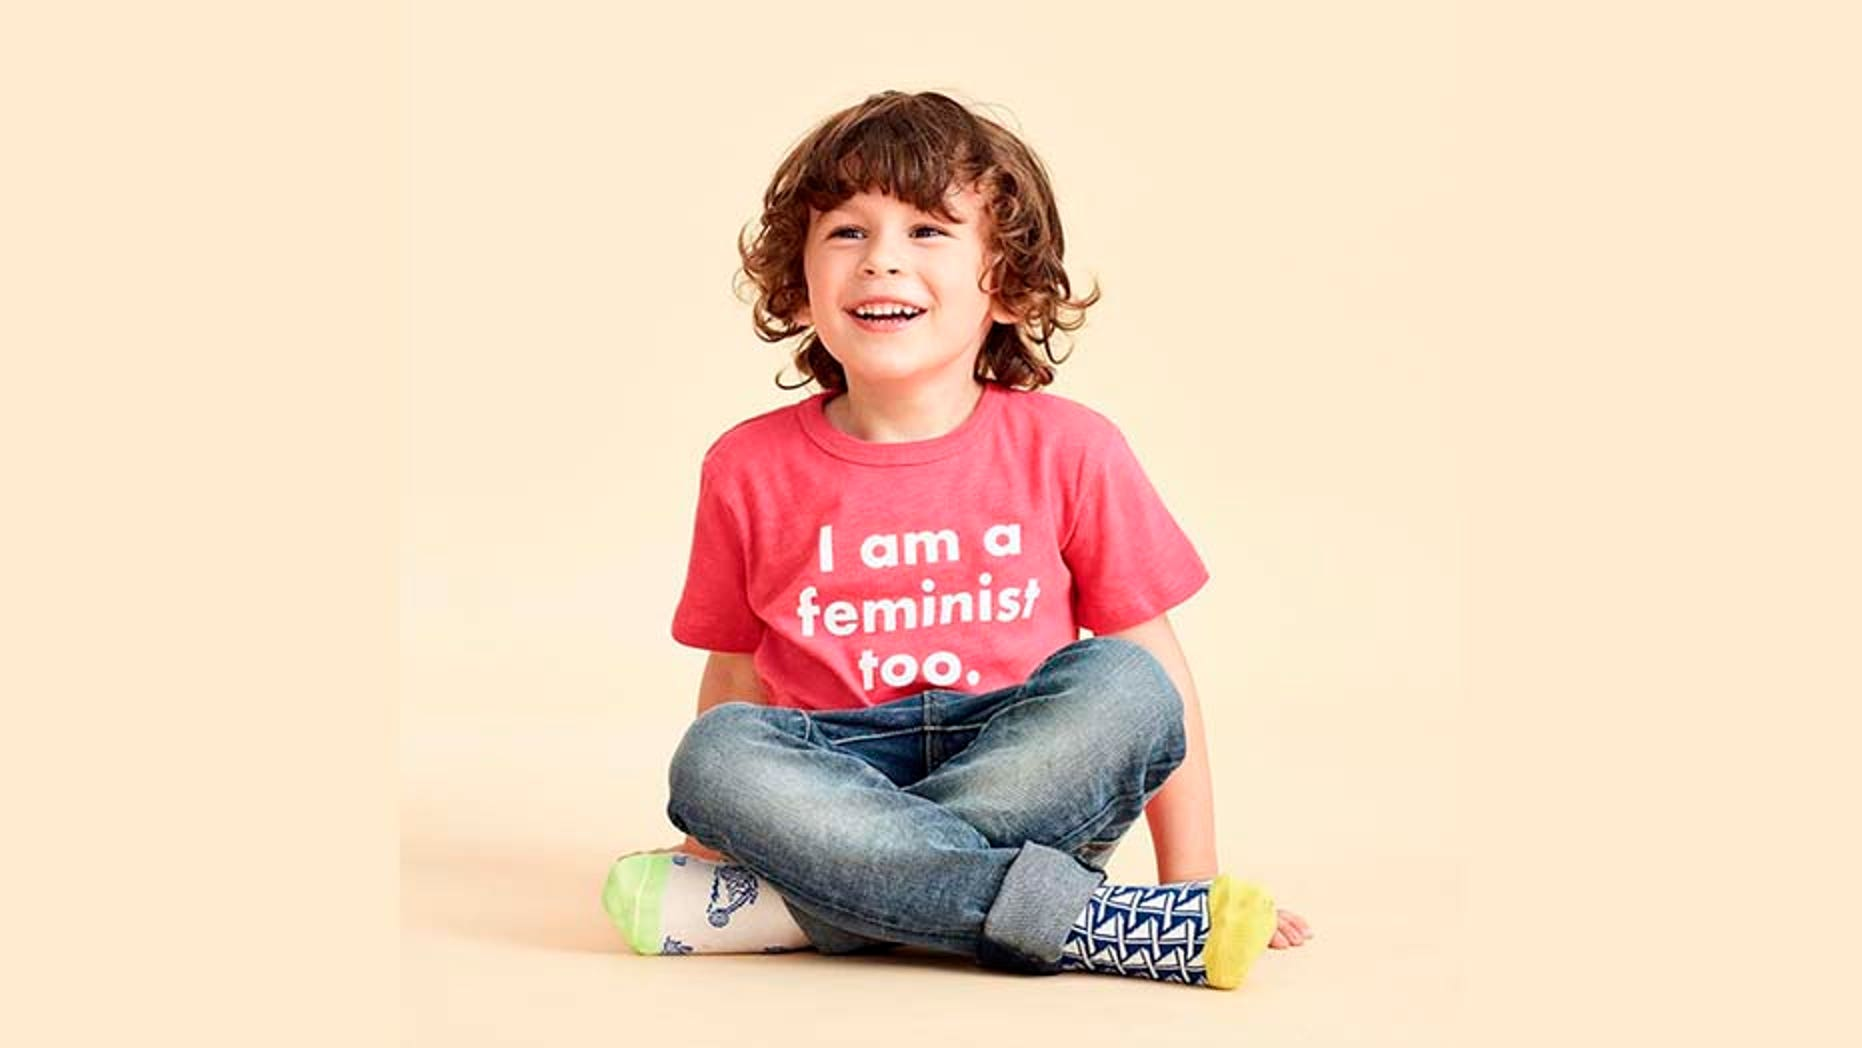 J.Crew posted a photo on Friday that featured a young male model in the controversial pink, feminist-focused T-shirt.